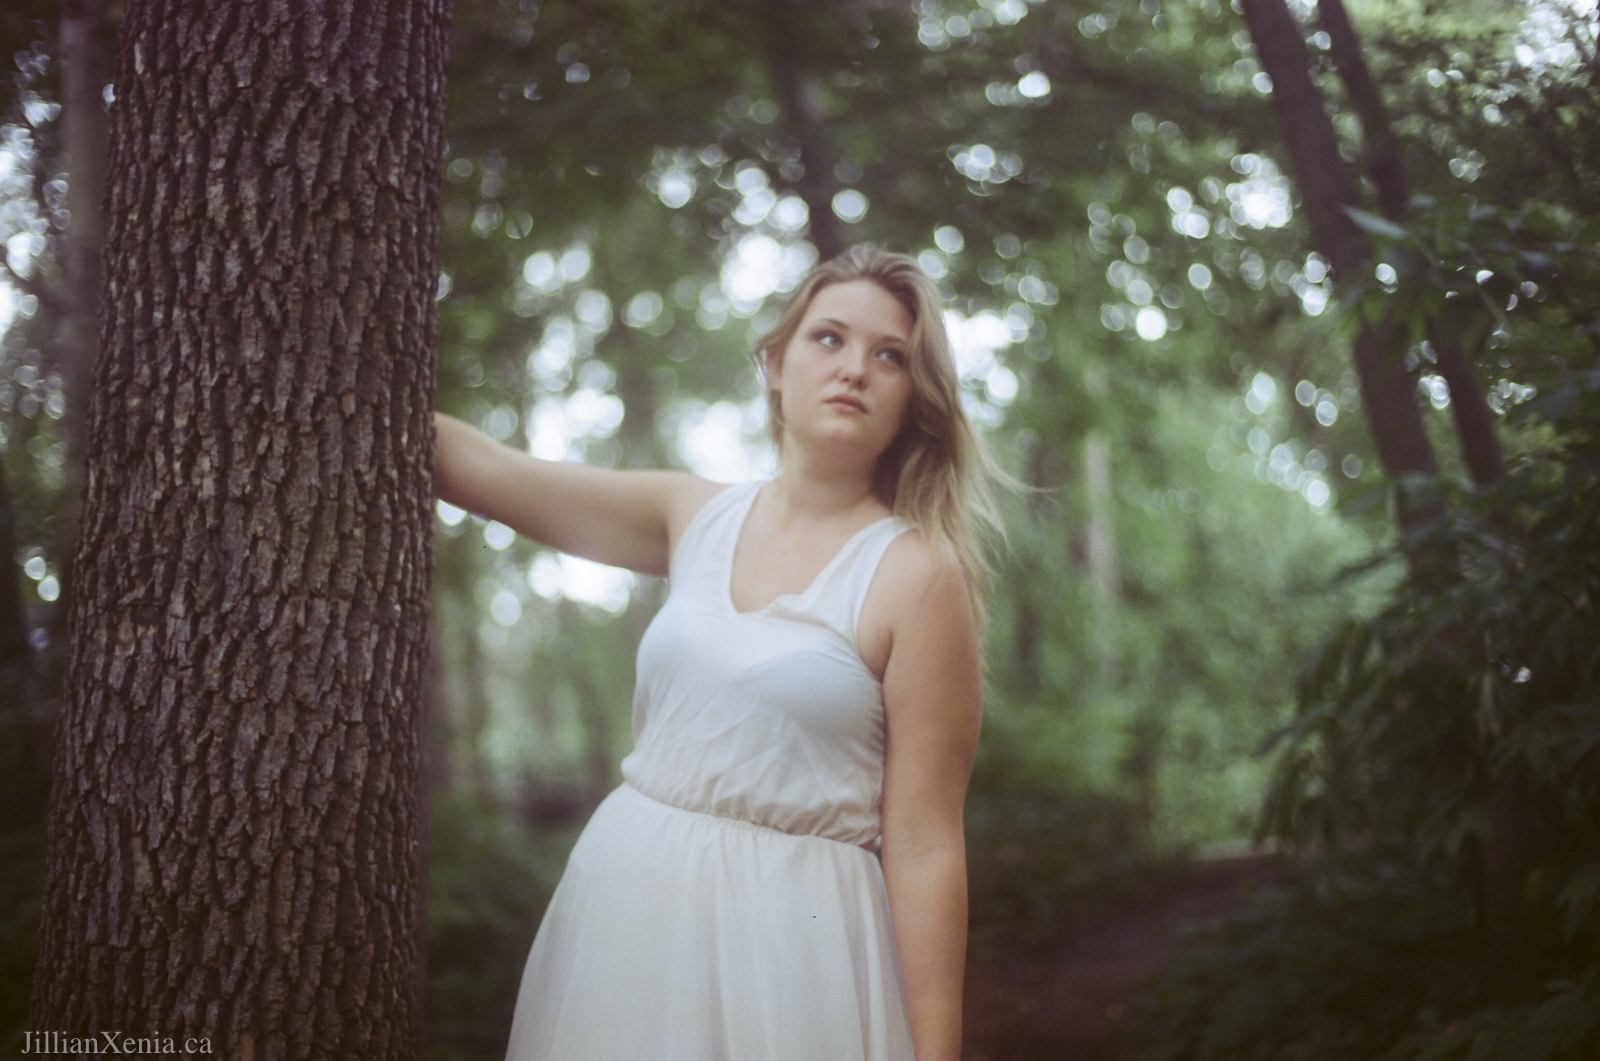 Cinestill 50-35mm film-Jillianxenia